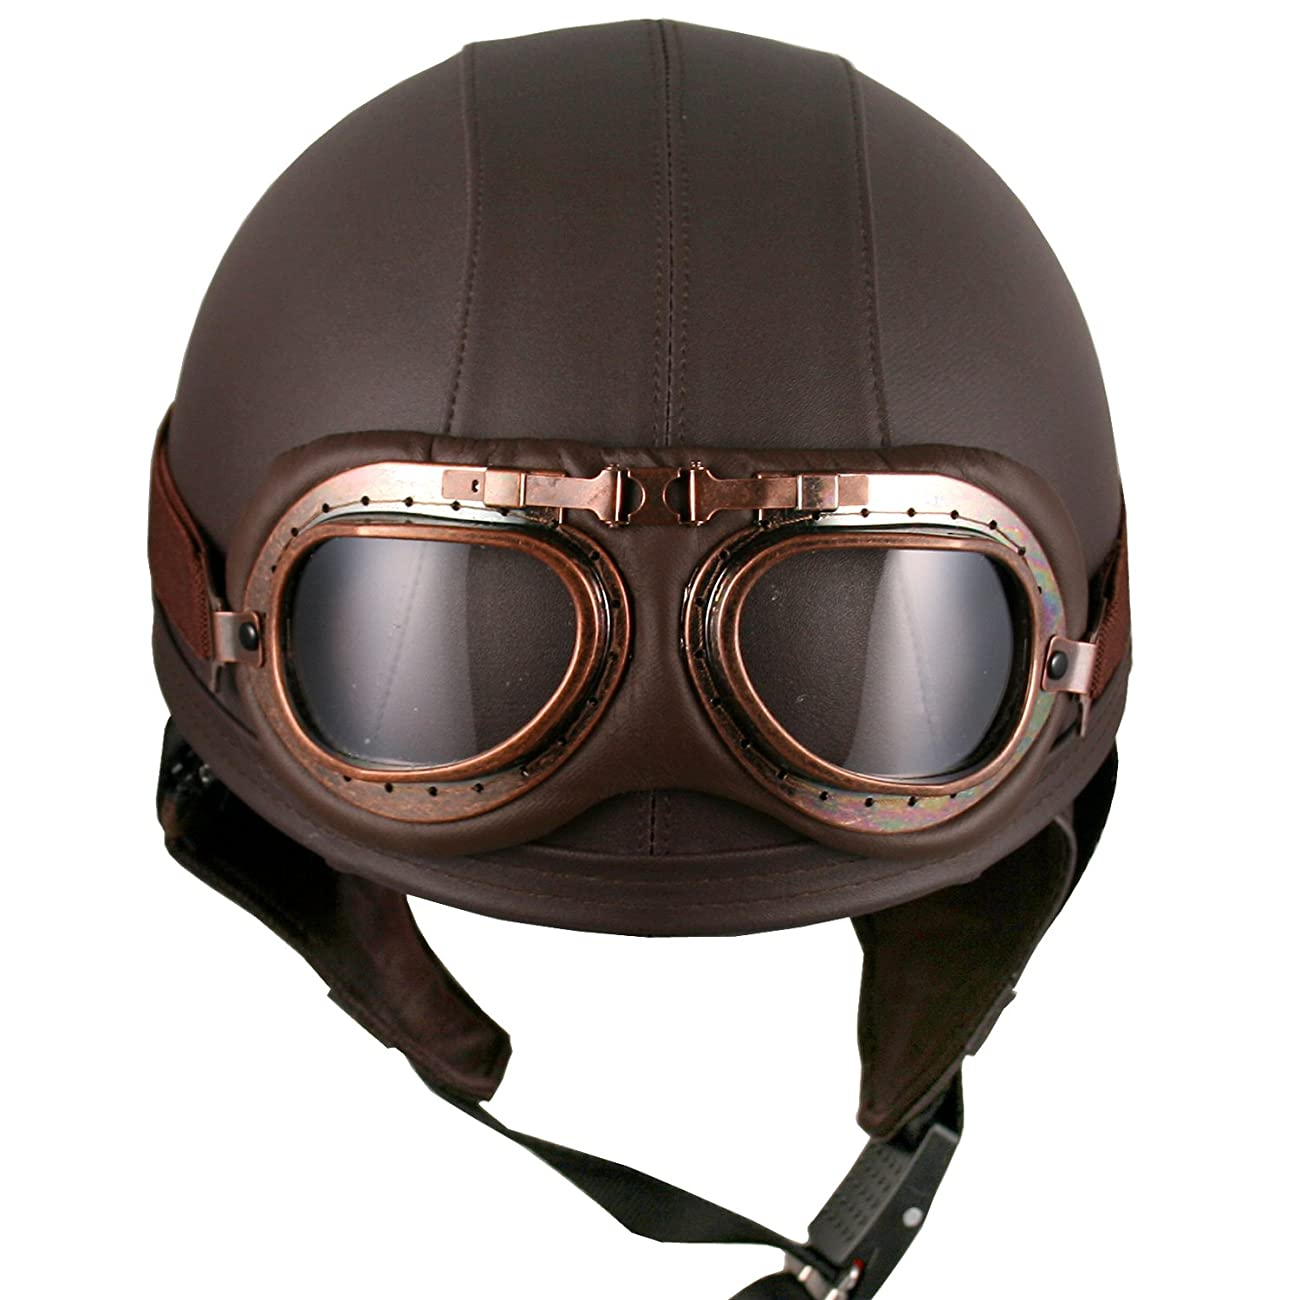 Leather Goggles German Vintage Style Half 1/2 Helmet Motorcycle Biker Cruiser Scooter Touring Helmet (Brown) 1